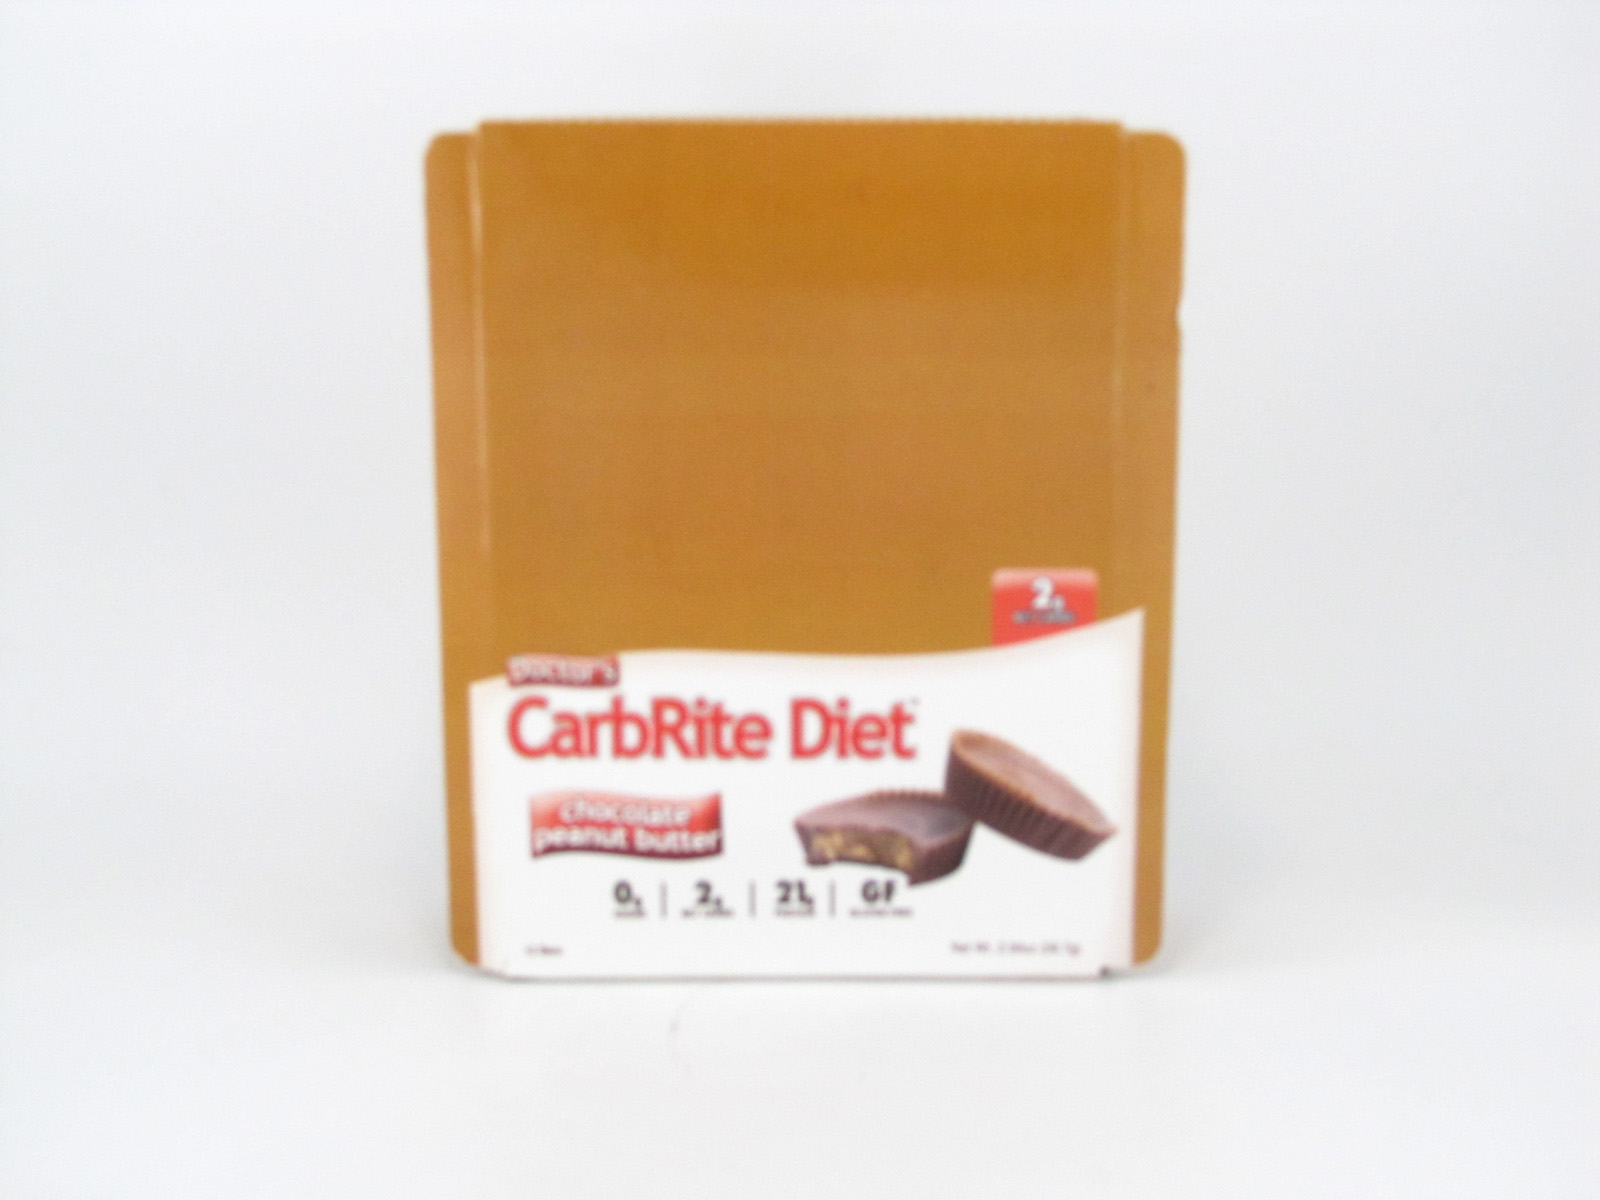 Doctor's CarbRite Diet - Chocolate Peanut Butter - Box view